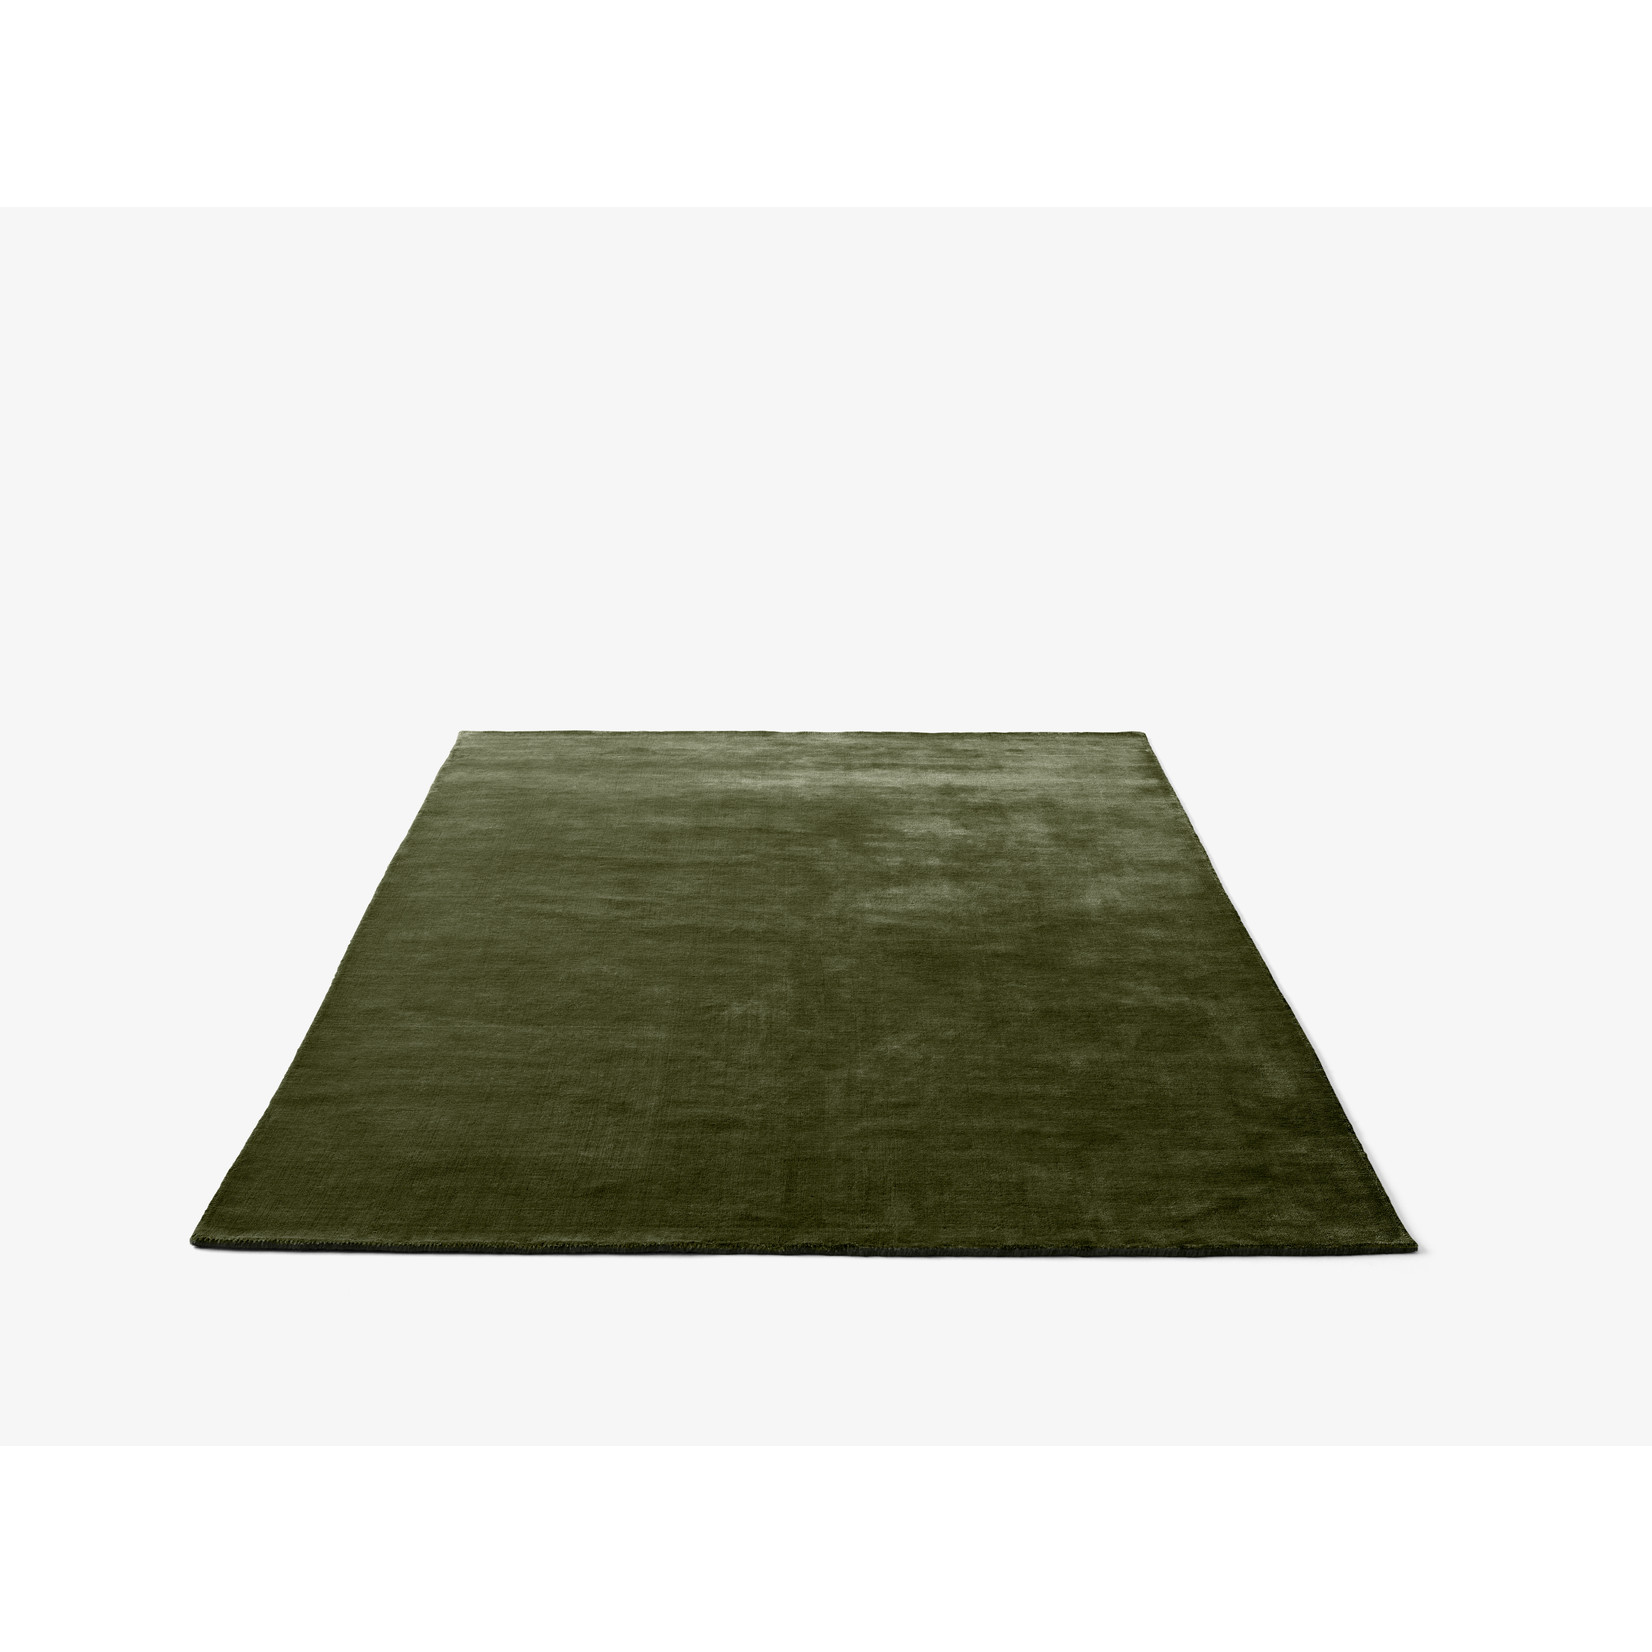 &Tradition The Moor AP7 | Green Pine 200x300cm